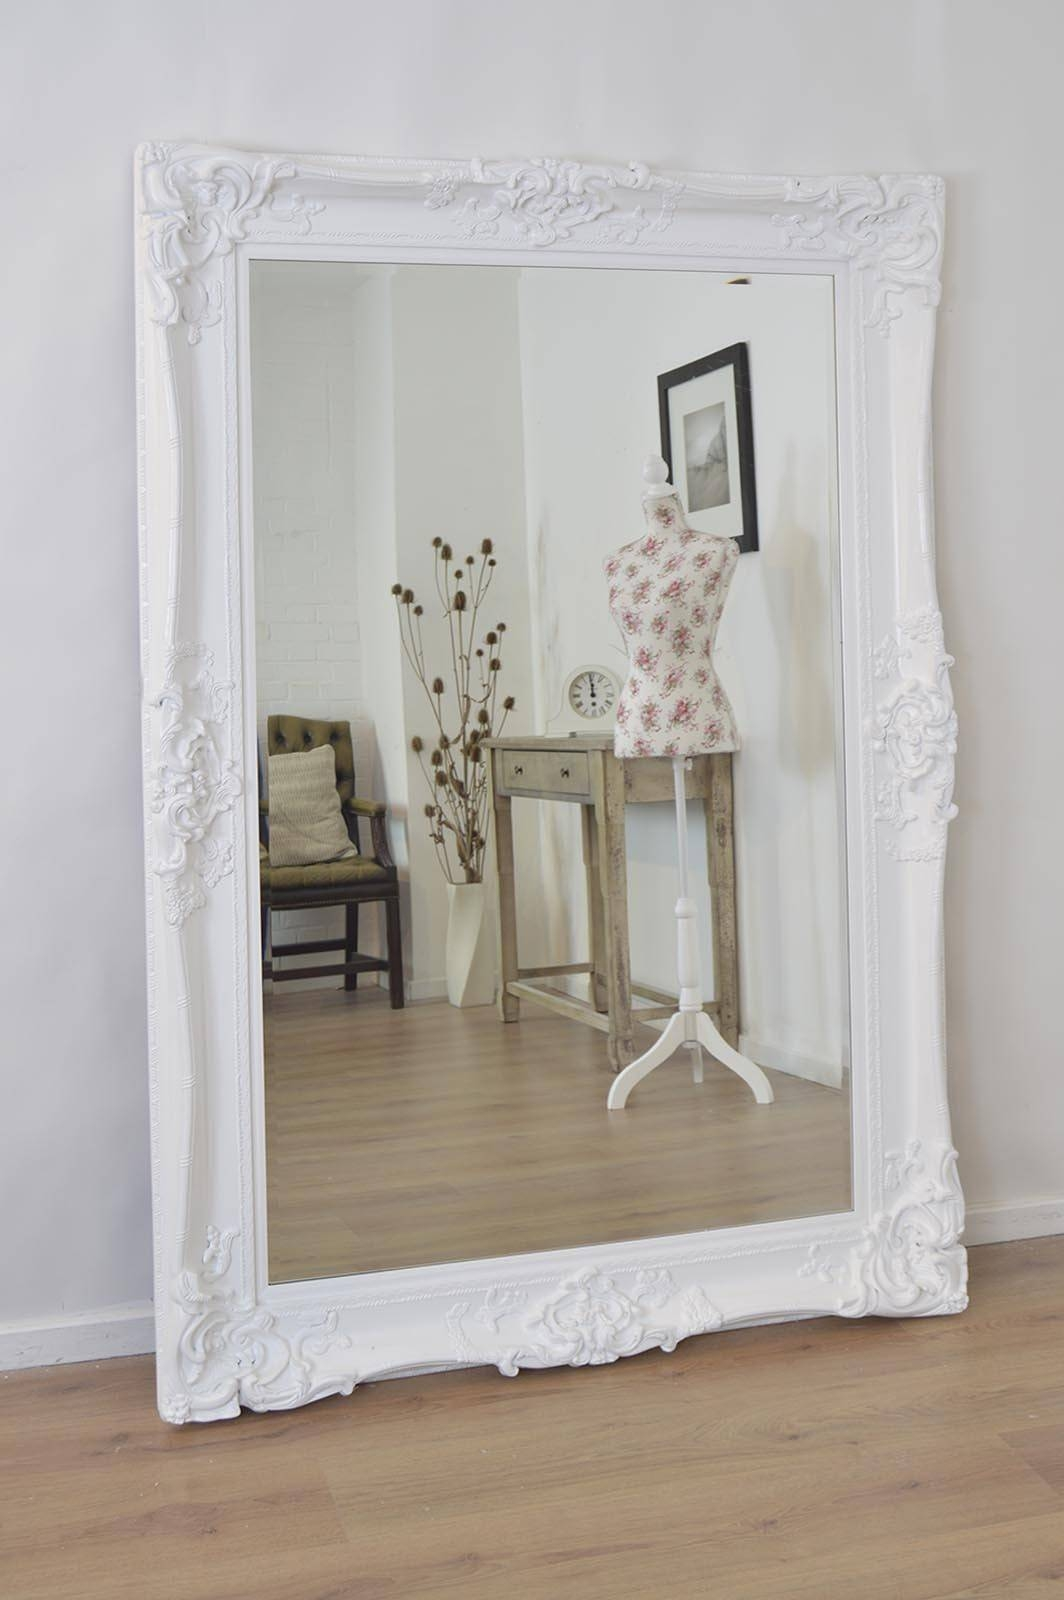 Shabby Chic Mirror Large – White Distressed Shabby Chic Mirror With Regard To Shabby Chic White Mirrors (View 12 of 15)